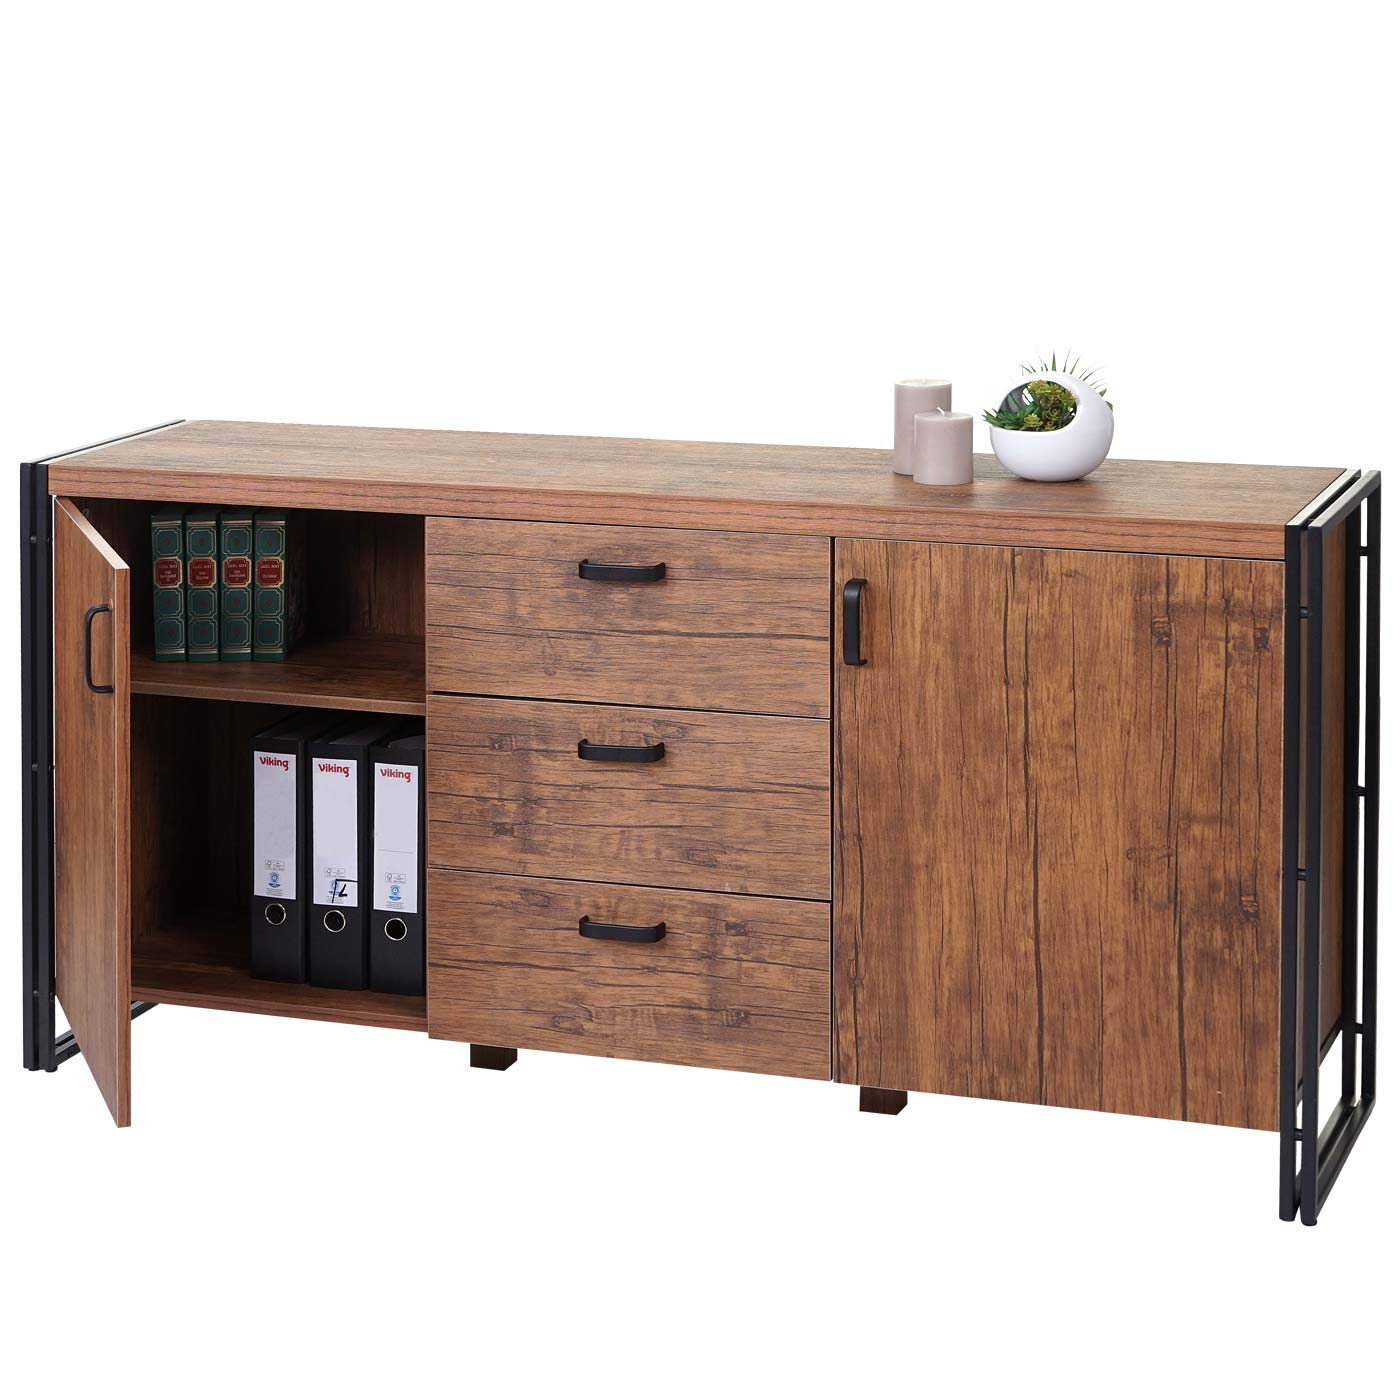 kommode 40 cm tief machen sie den preisvergleich bei nextag. Black Bedroom Furniture Sets. Home Design Ideas